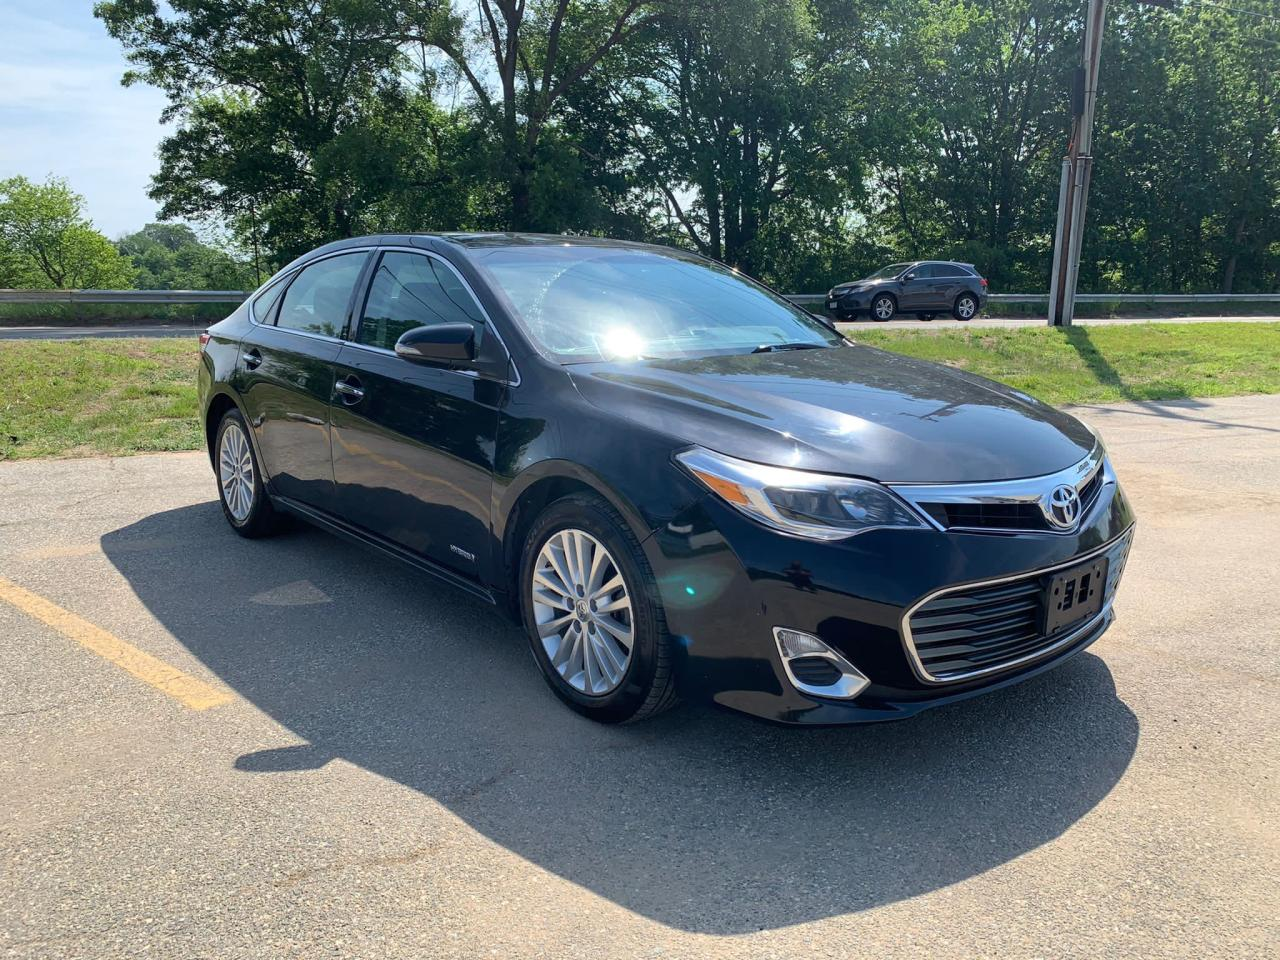 https://mcarsdelivery.com.ua/auctions-cars/10347/